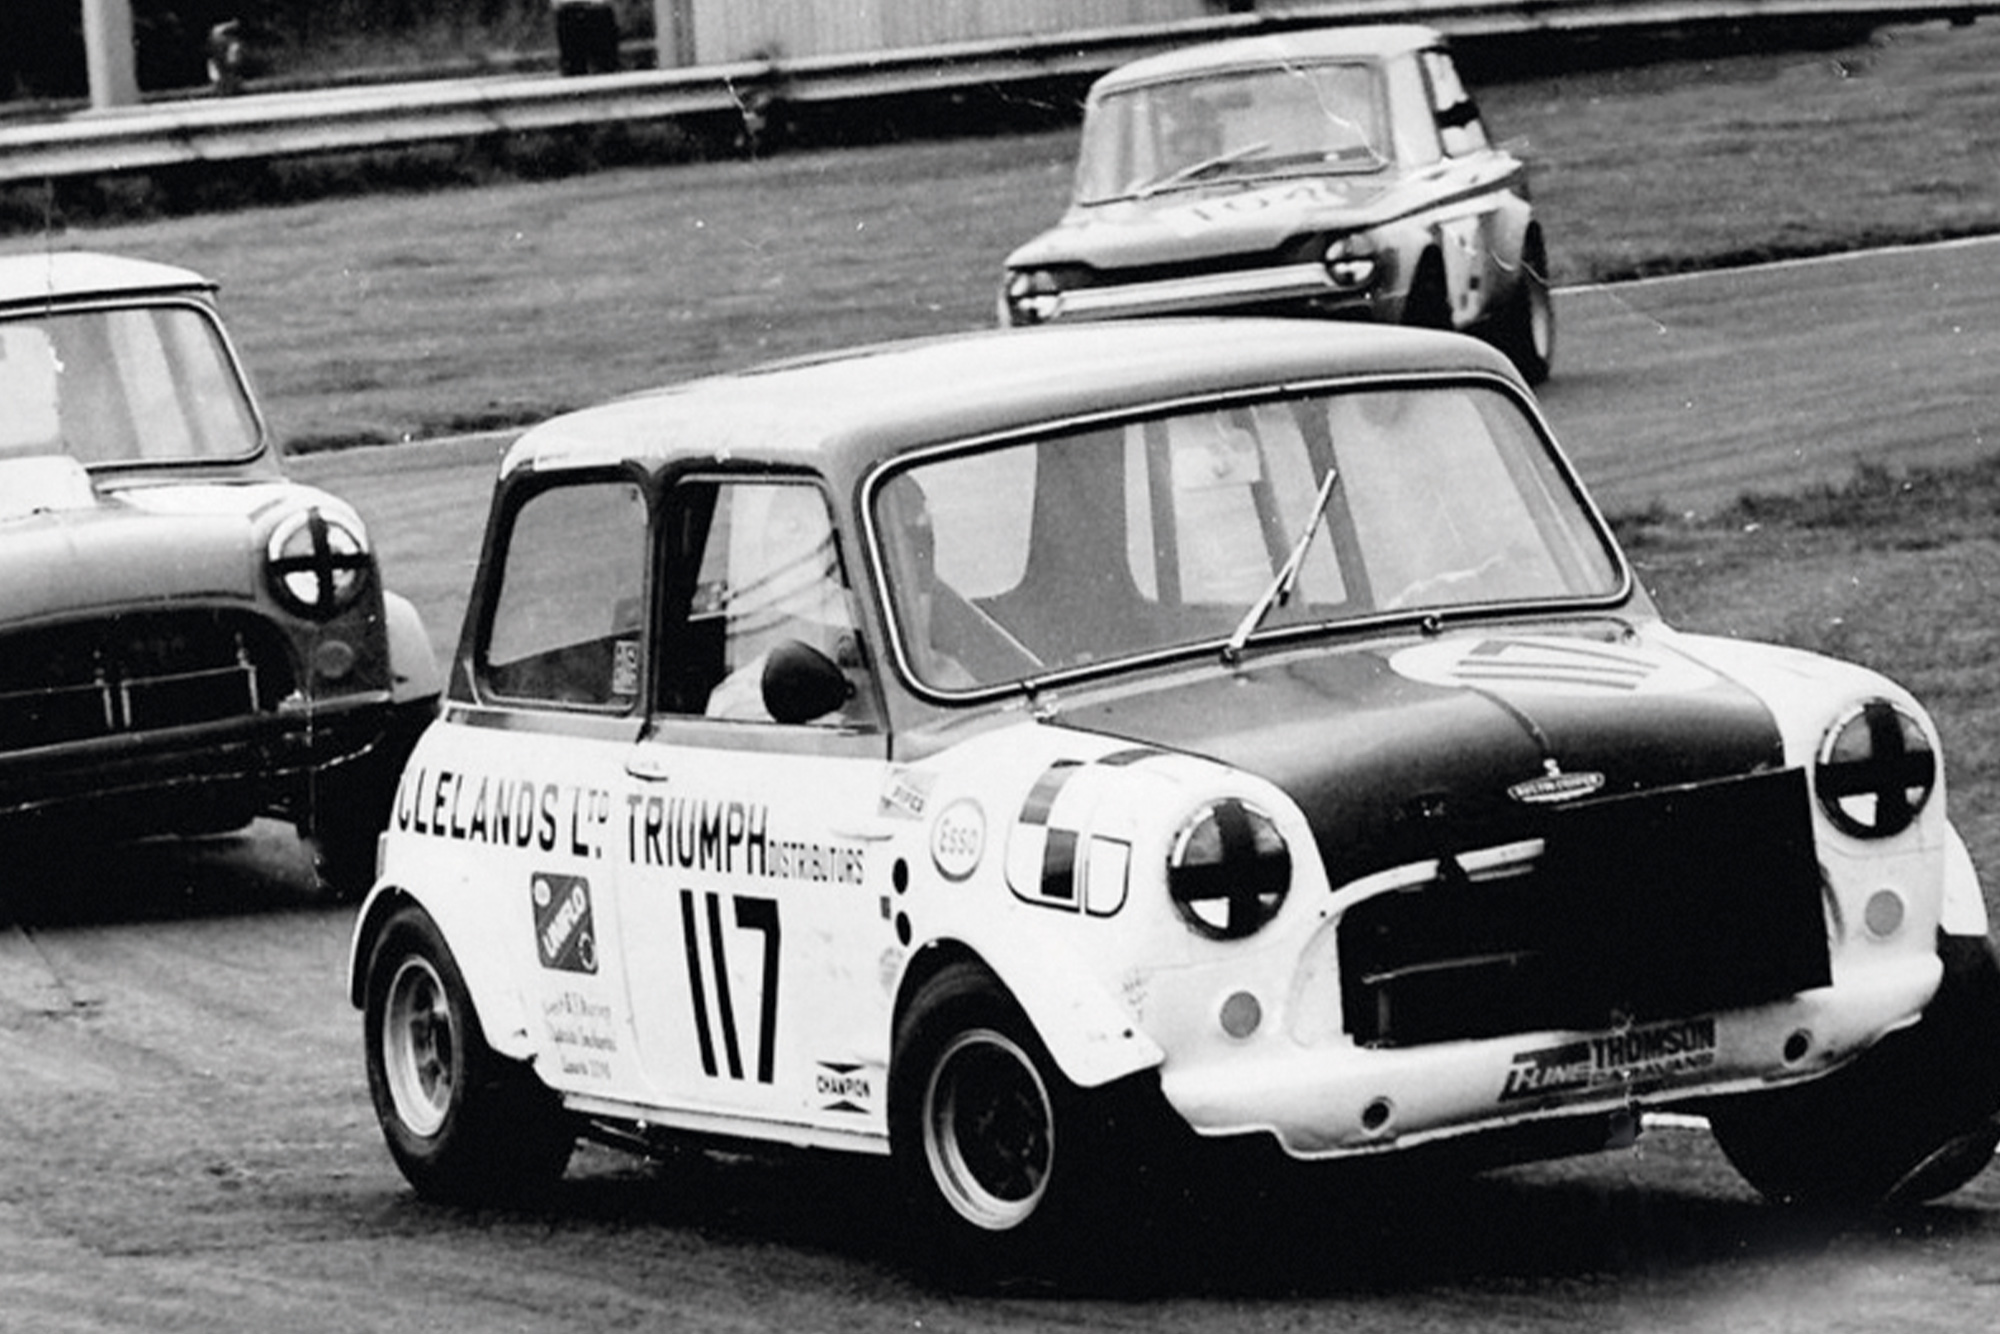 John Cleland makes his racing debut in a Mini at Ingliston in 1972